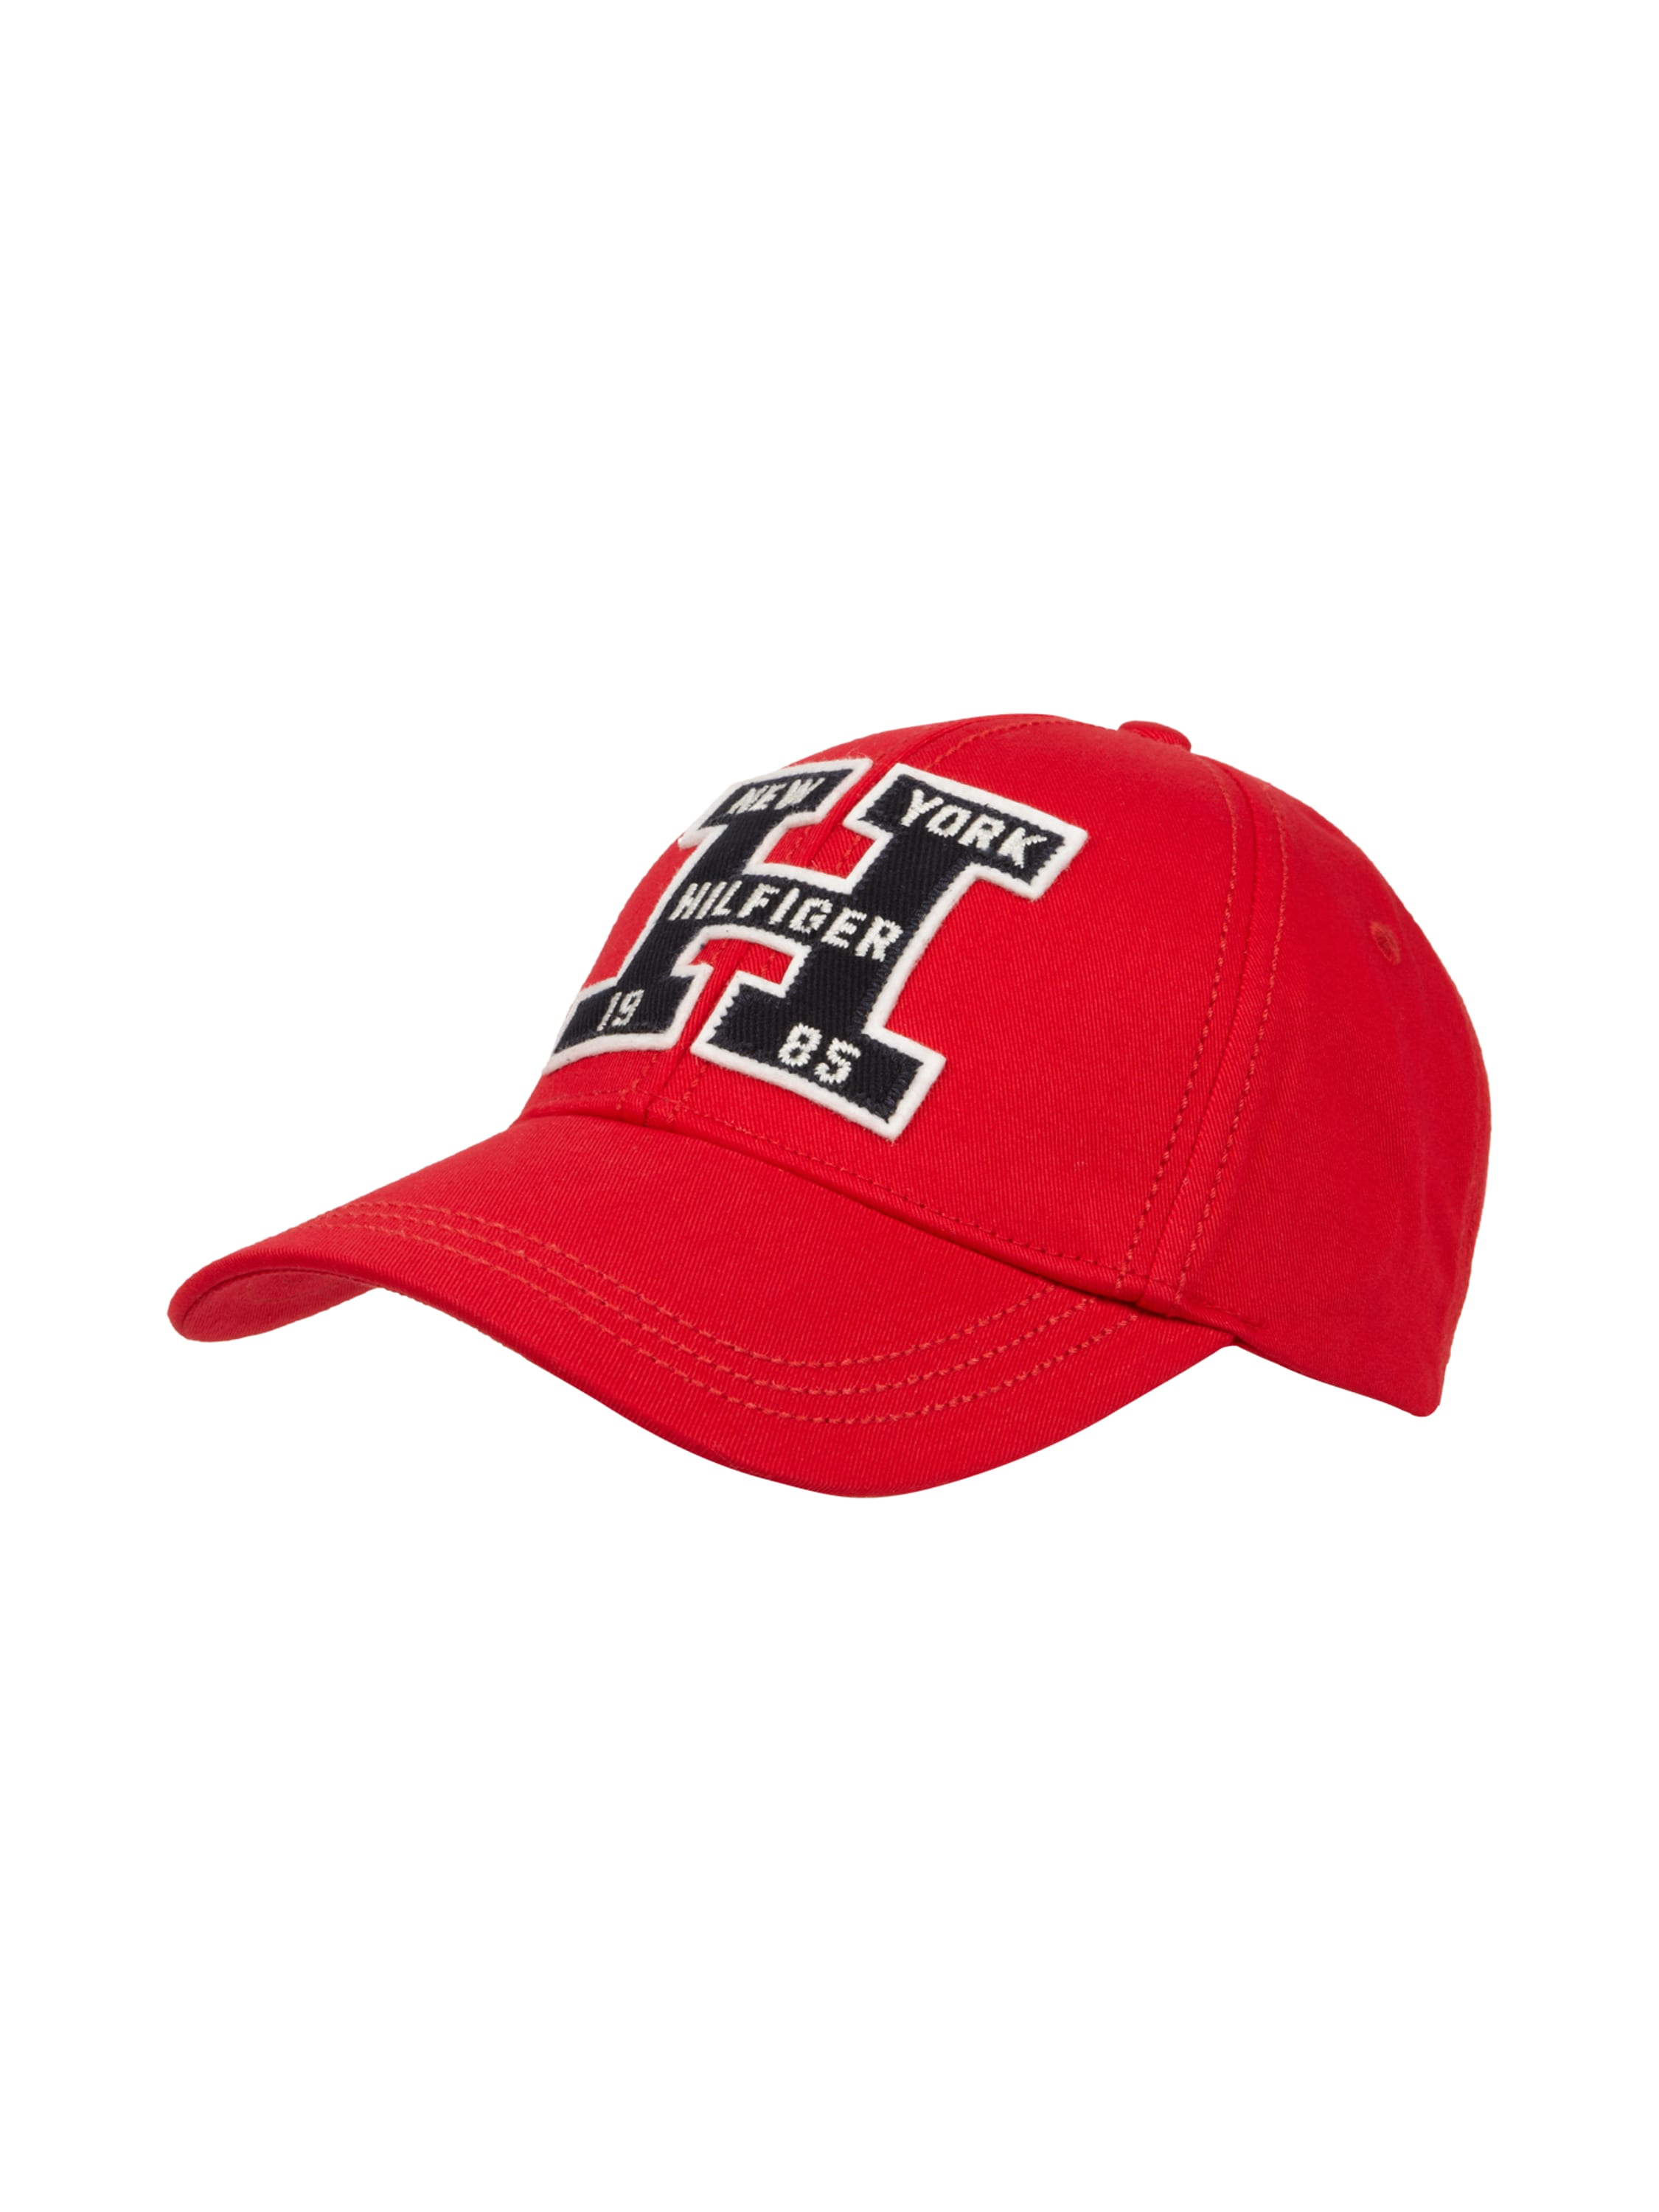 tommy hilfiger 6 panel basecap mit logo stickerei in rot. Black Bedroom Furniture Sets. Home Design Ideas